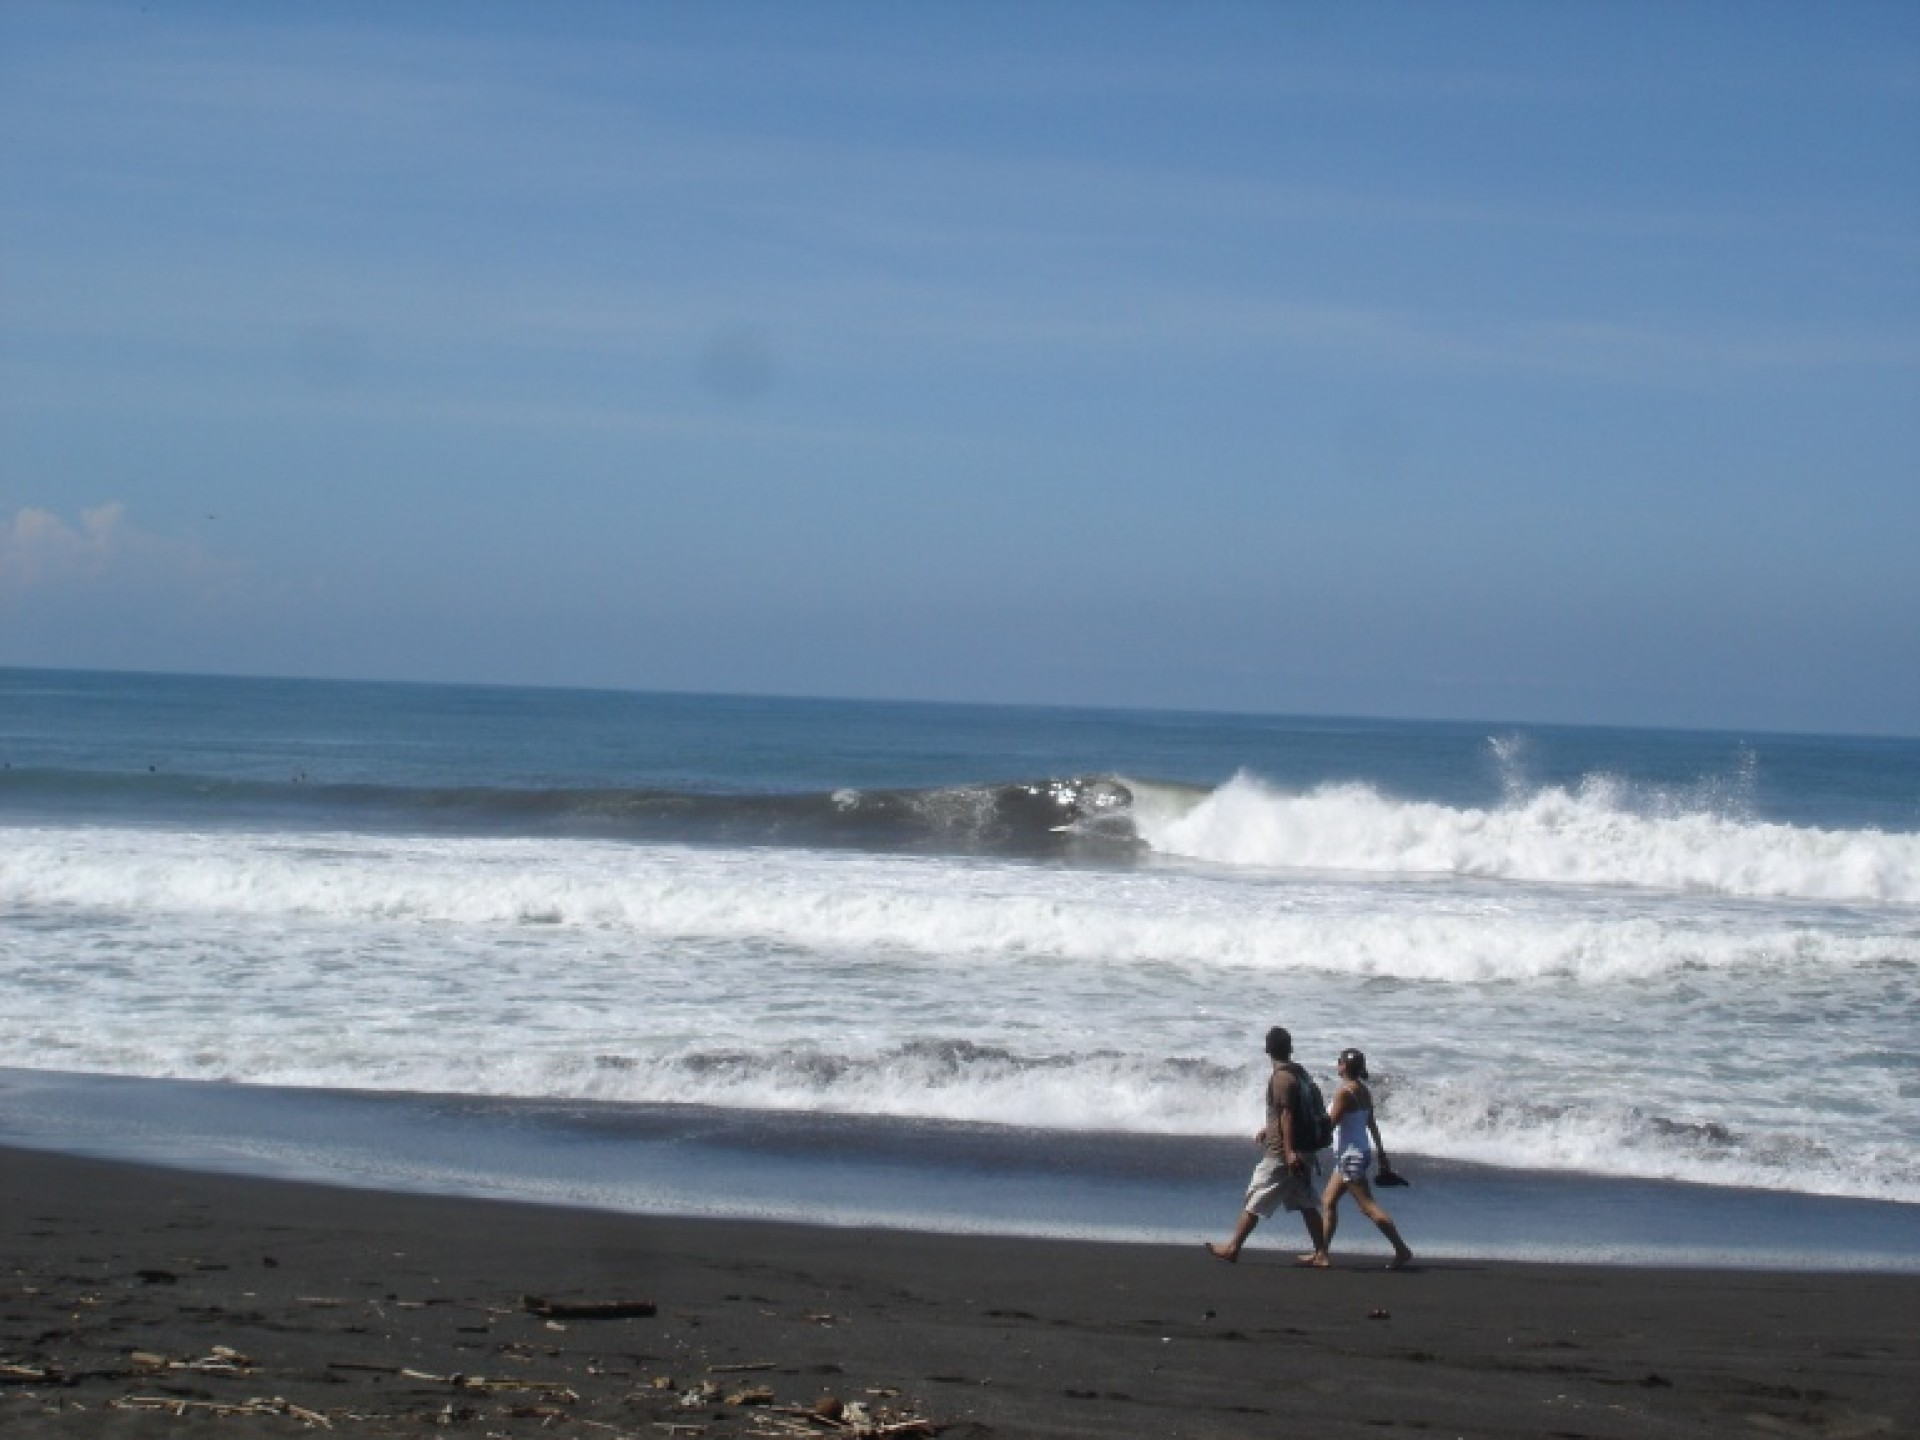 dakris's photo of Playa Hermosa